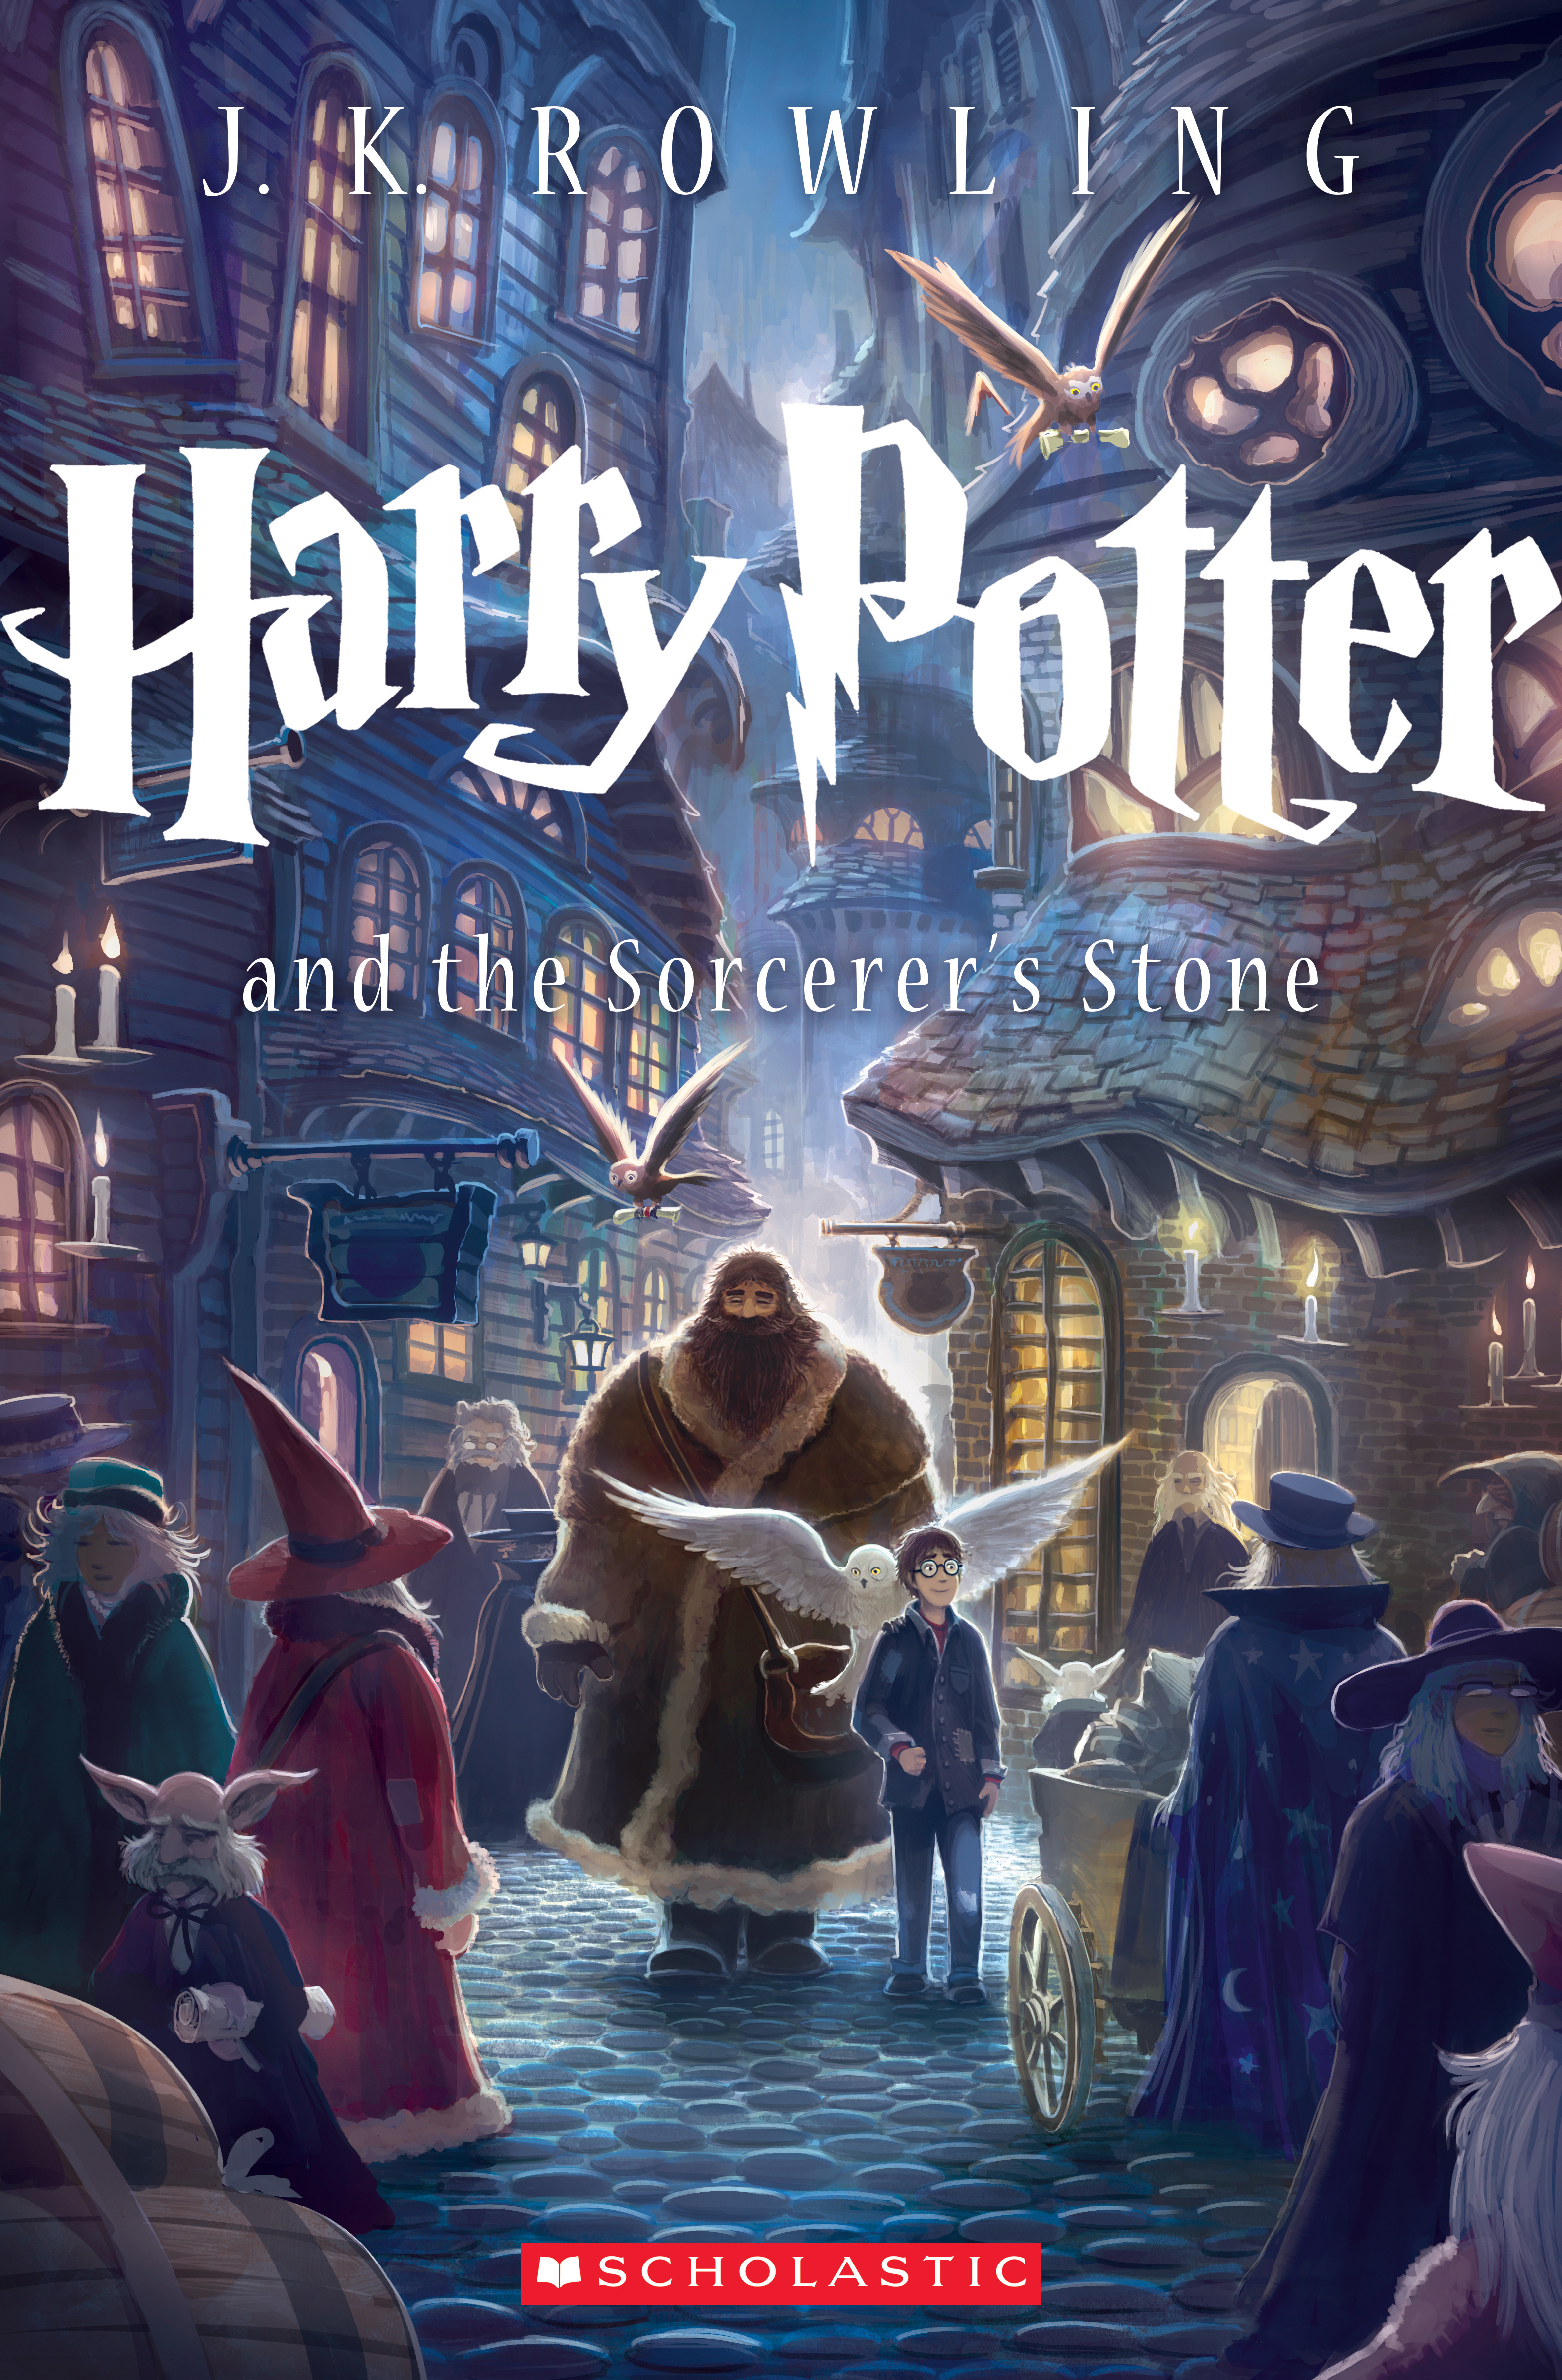 Harry Potter School Book Cover ~ Back covers of new scholastic harry potter editions revealed